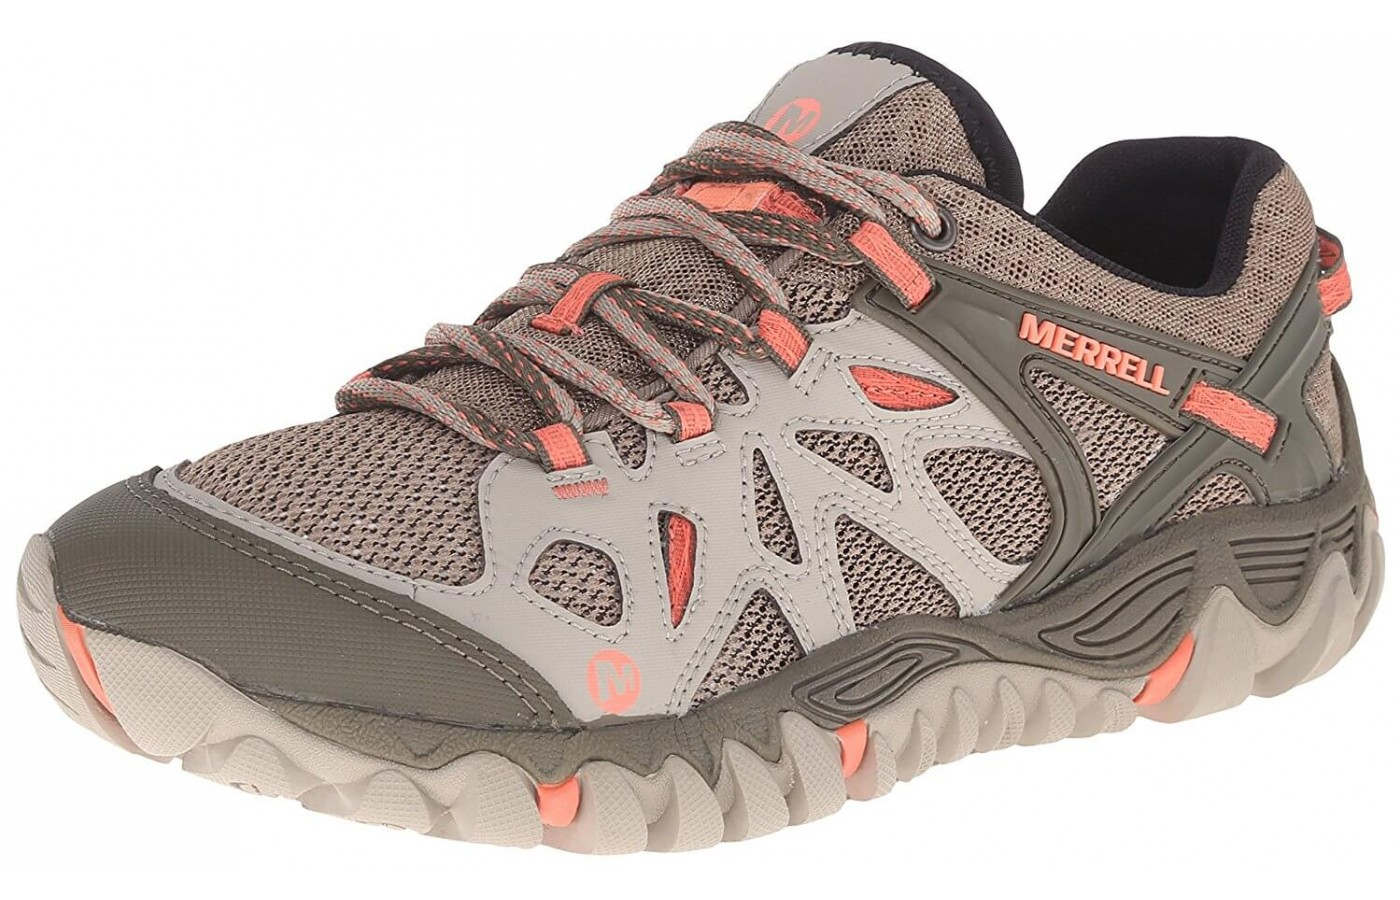 Merrell All Out Blaze Aero Sport is a quality trail running shoe